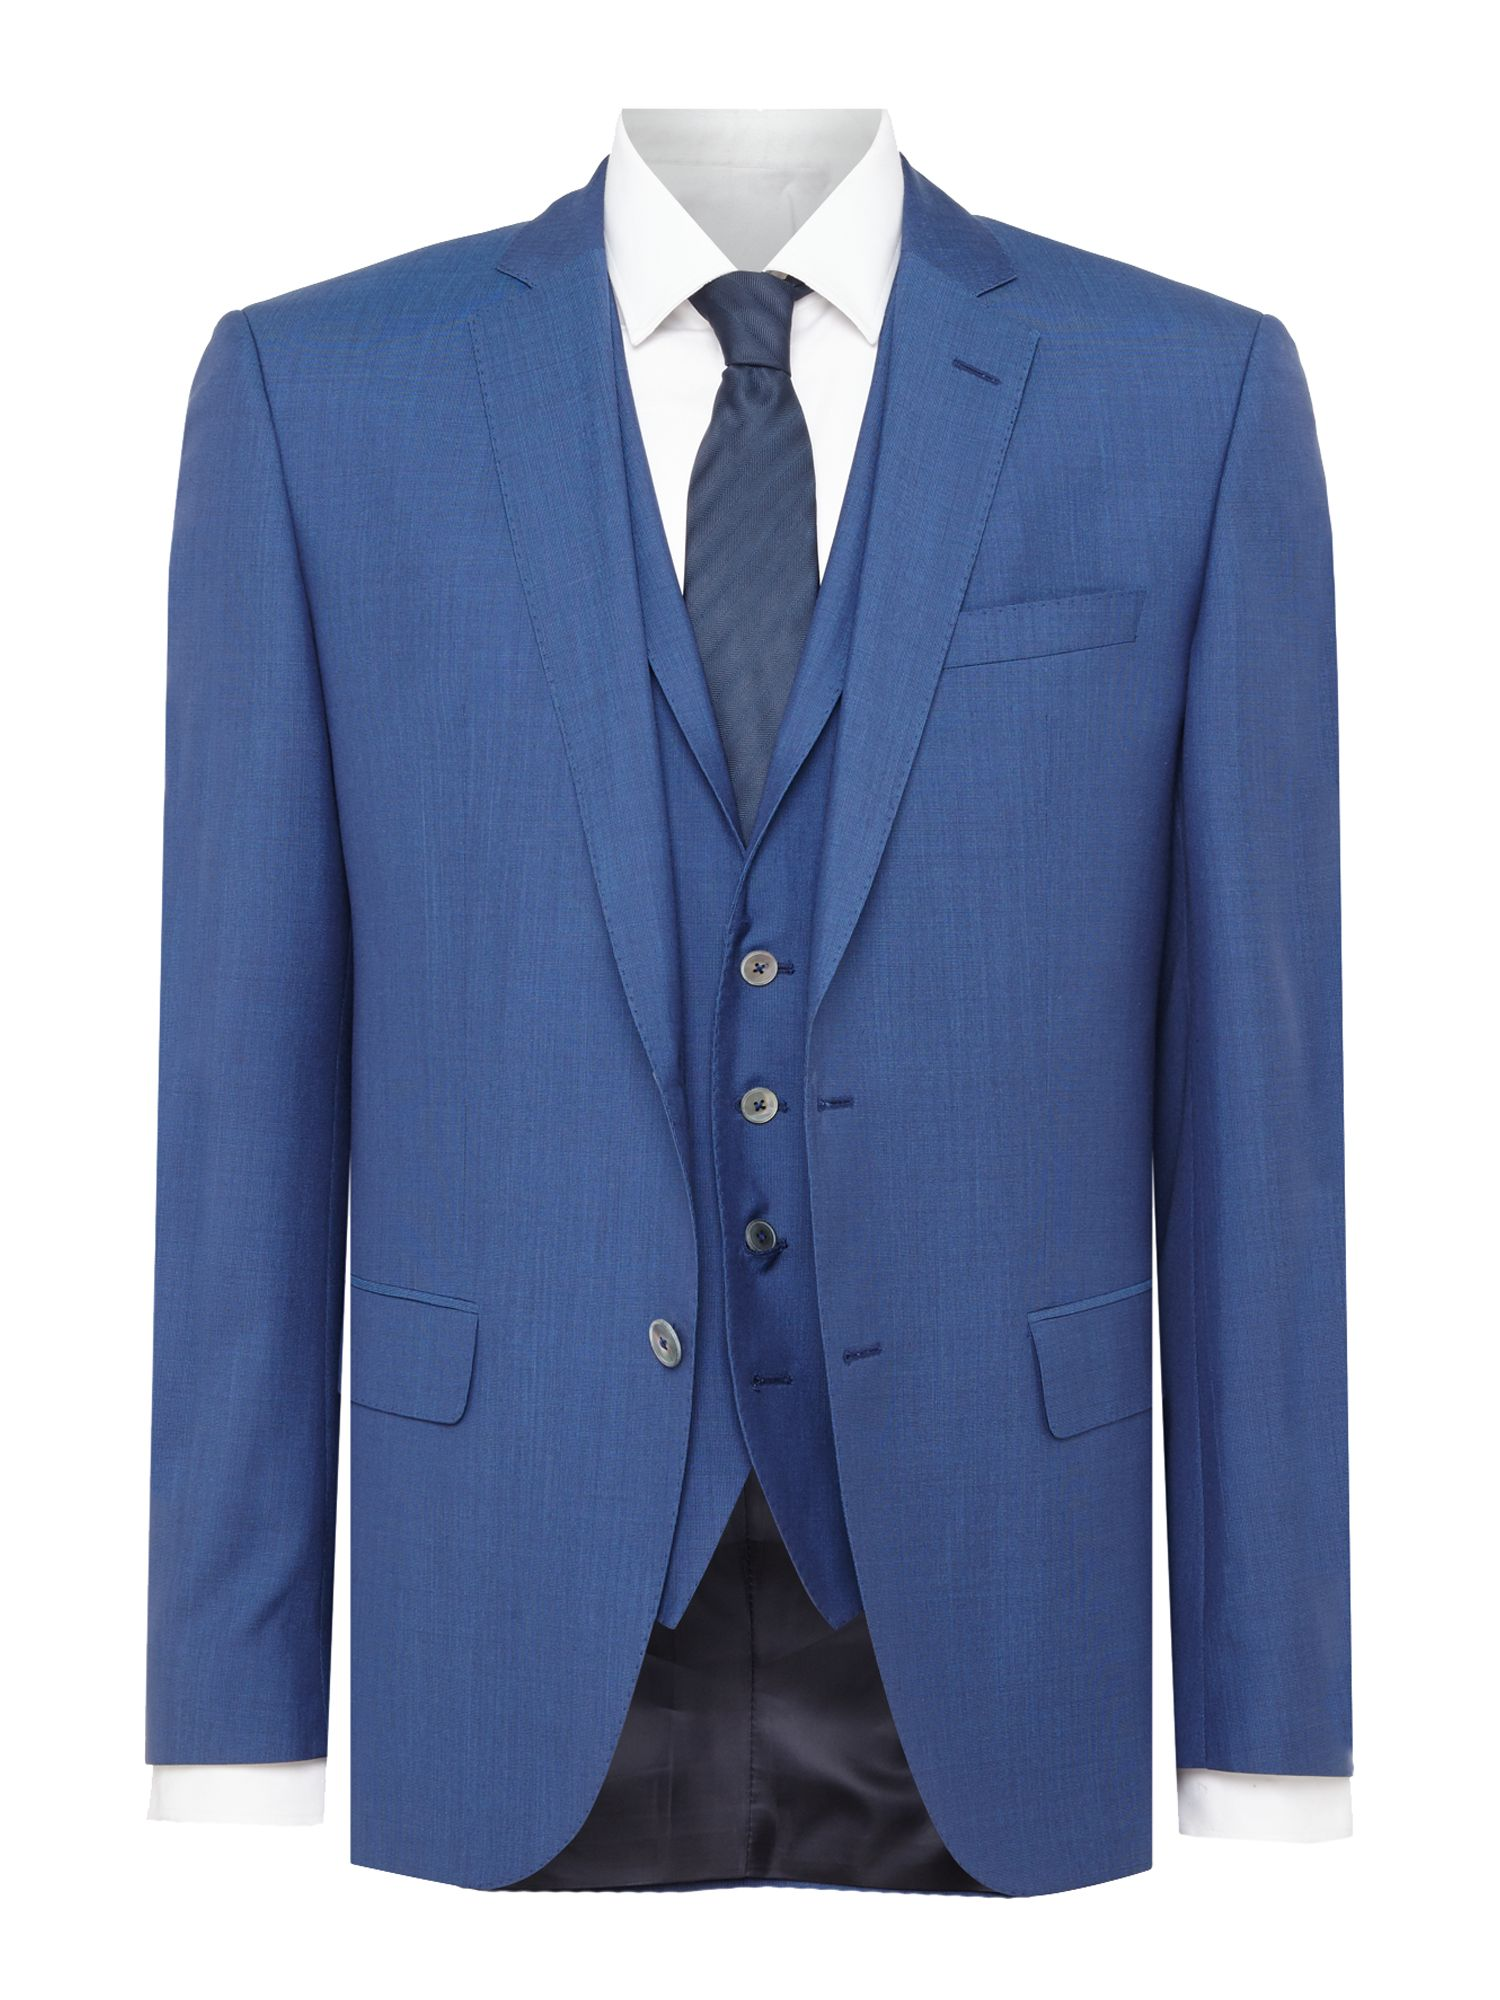 Browse our large inventory of mens wholesale suits, tuxedos, sport coats, men's dress shoes and other attire. We carry similar styles to the major brand names, but at a lower price. We carry similar styles to the major brand names, but at a lower price.